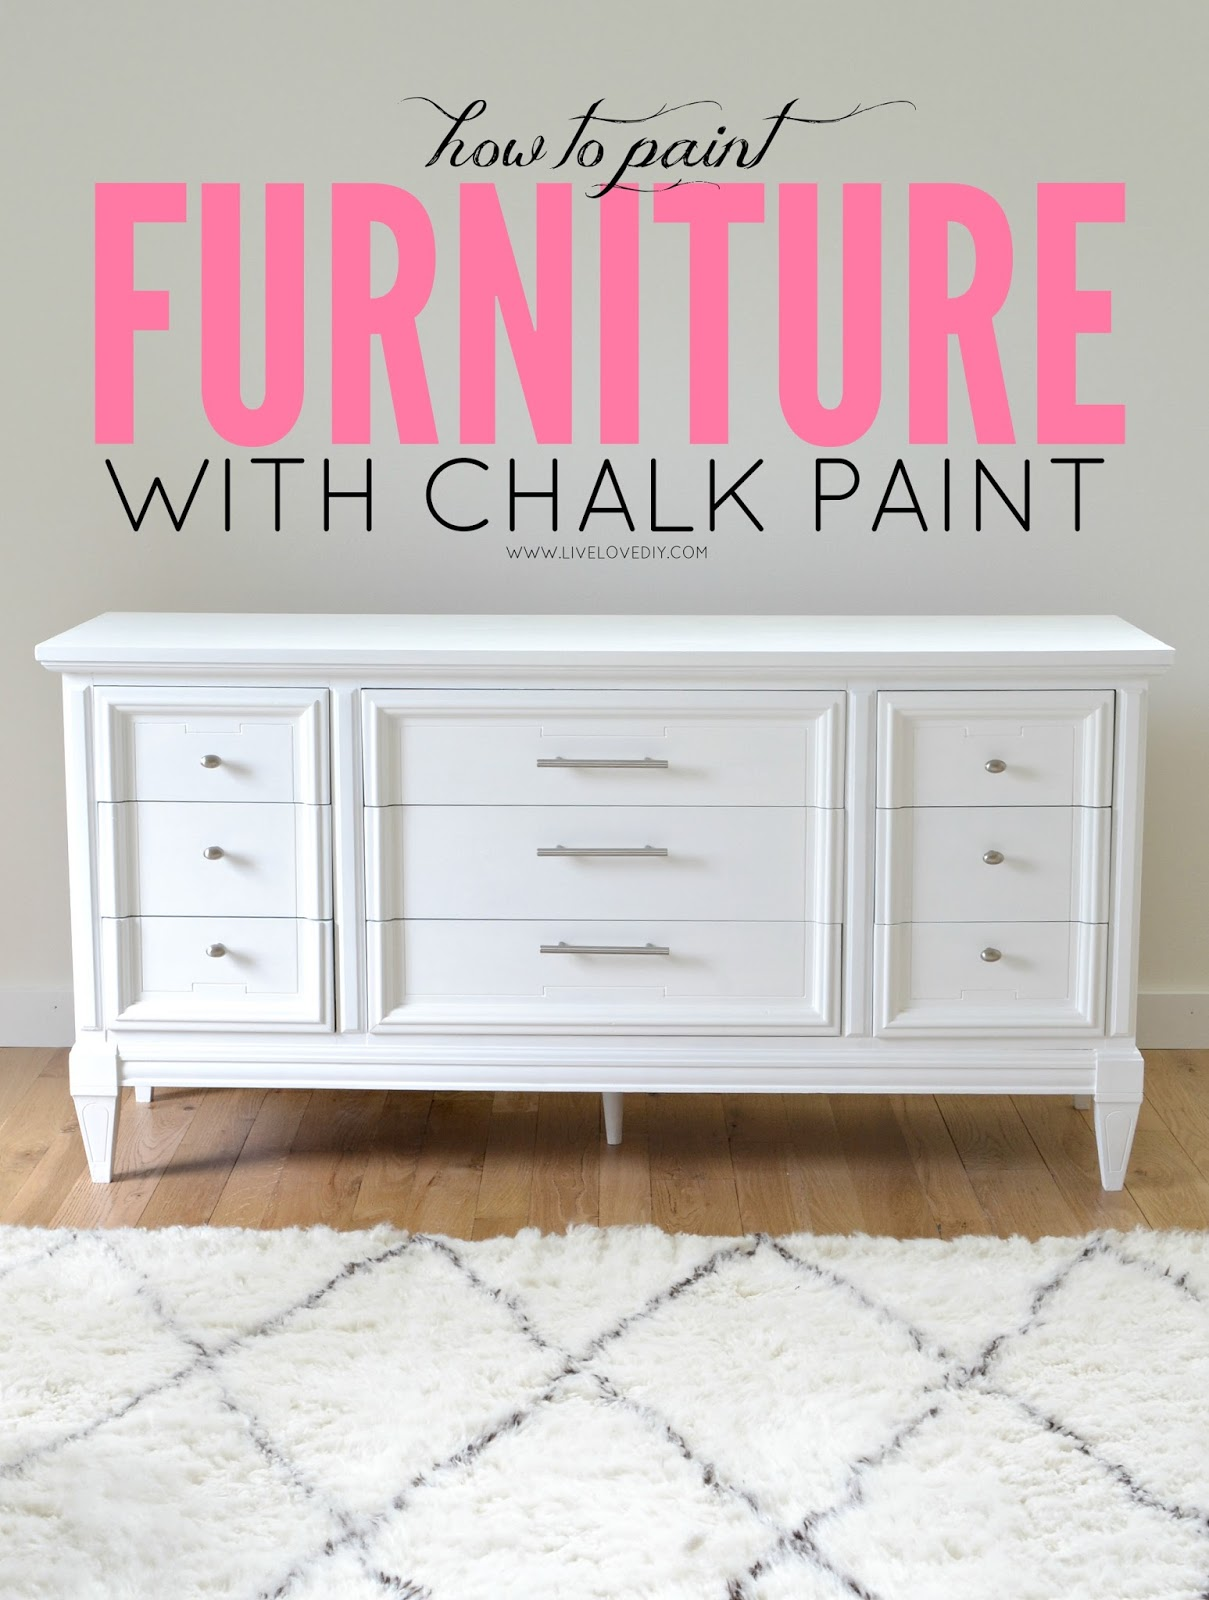 how to paint furniture with chalk paint and how to survive a diy